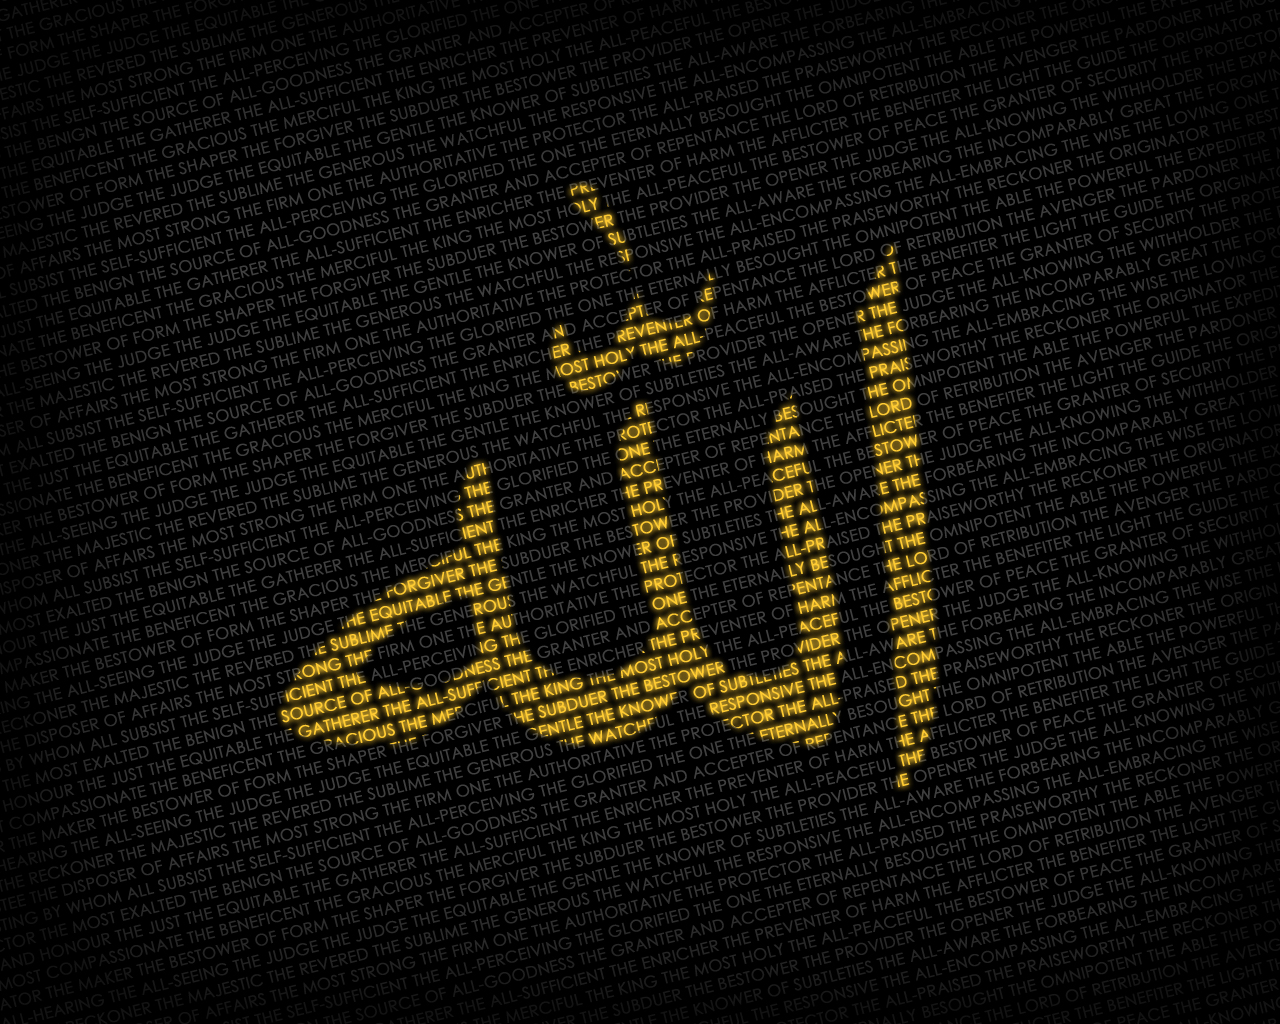 Cool wallpapers 99 names of allah - A and s name wallpaper ...